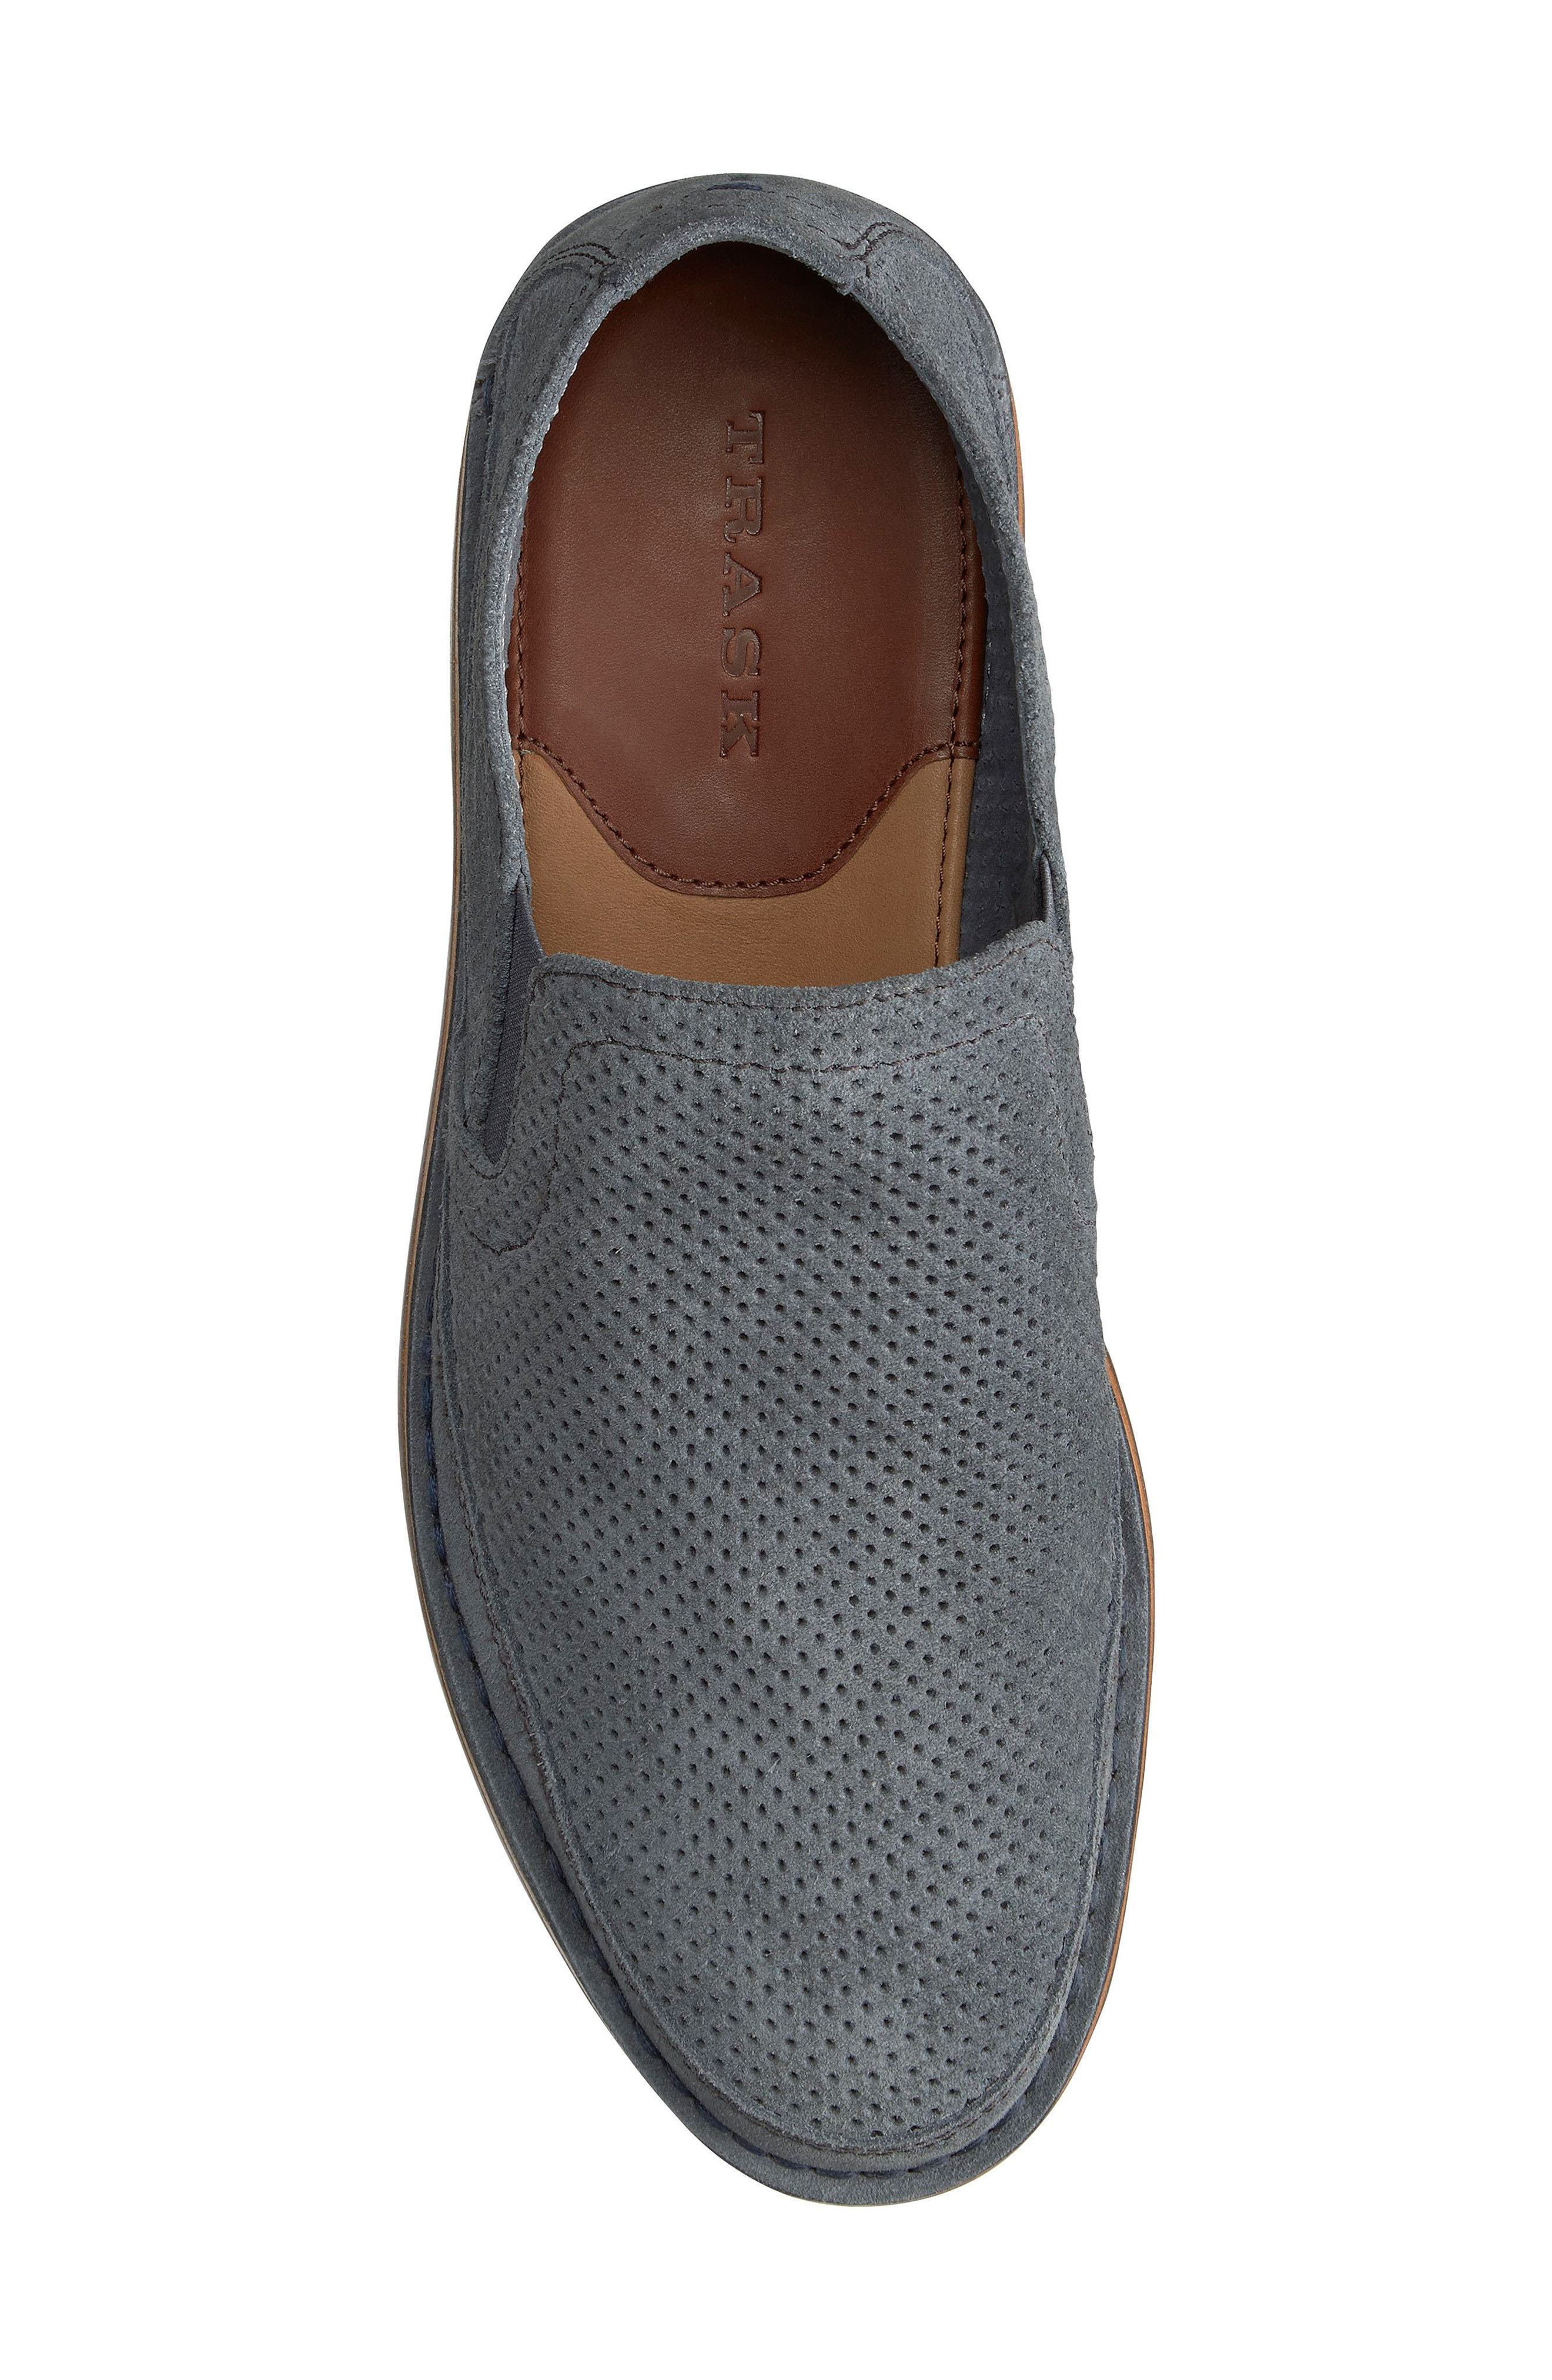 TRASK,                             Bradley Perforated Slip-On,                             Alternate thumbnail 4, color,                             SLATE GREY SUEDE